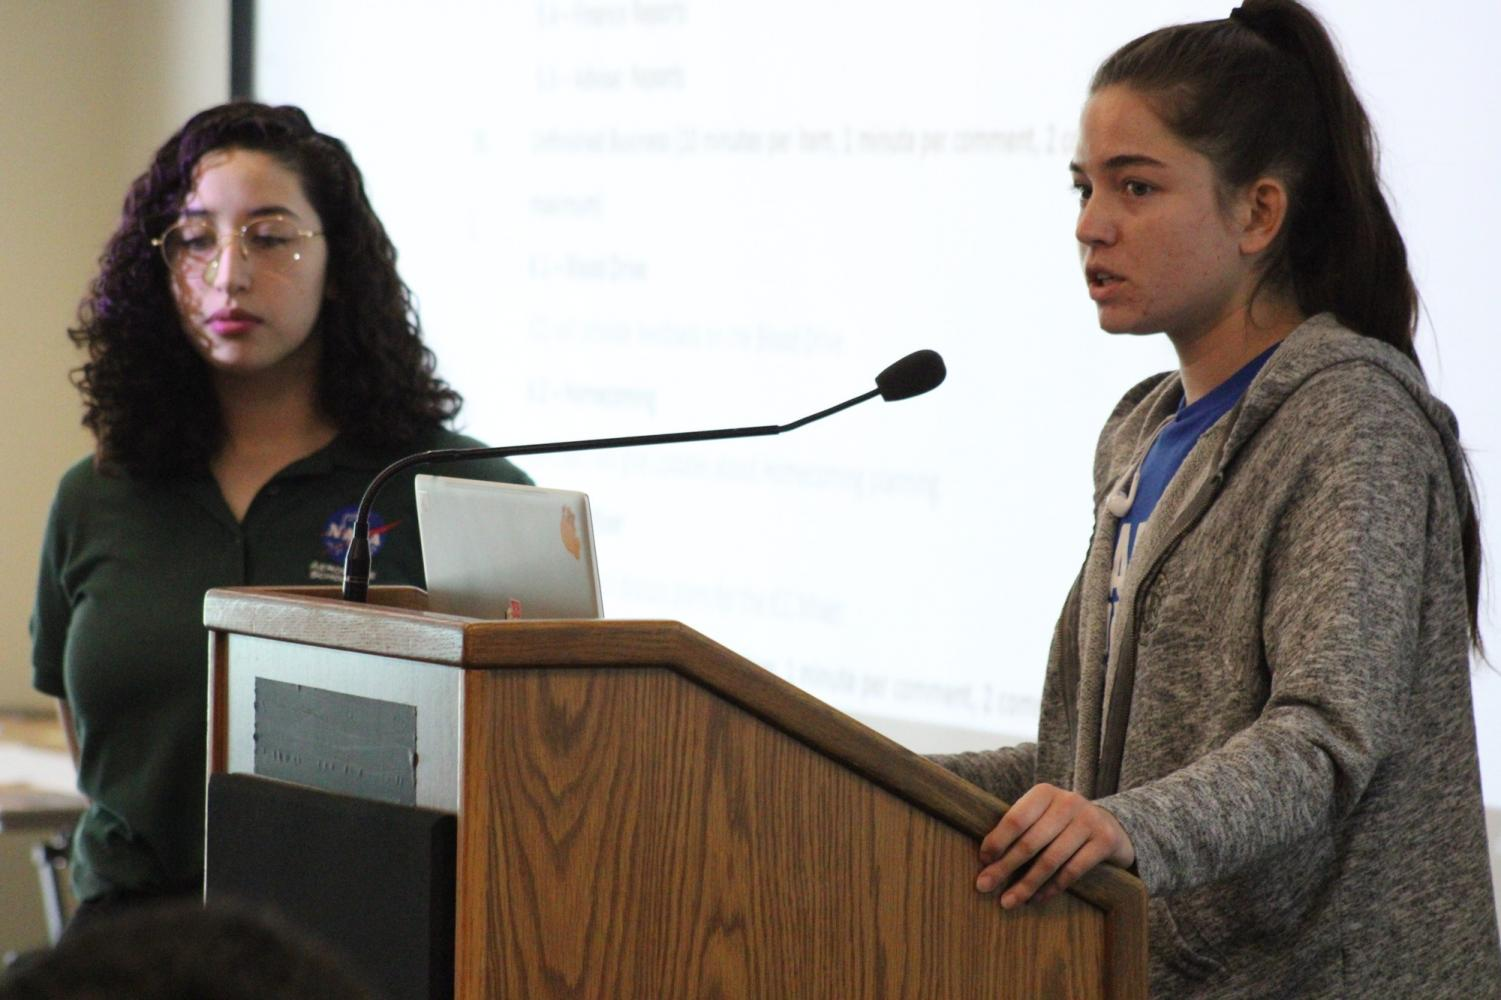 Inter-Club Council Director of Activities Makayla Propst (right) questions whether a dance is really the best way to satisfy and attract a larger, more complete part of the El Camino College student population with the funds allotted for a homecoming dance during an Inter-Club Council meeting Monday, Oct. 28 in the Distance Education Center. With it being three weeks prior to the set date for the homecoming dance, the Inter-Club Council has yet to produce a budget detailing how $4,500 allotted for homecoming expenses will be spent. Jaime Solis/The Union